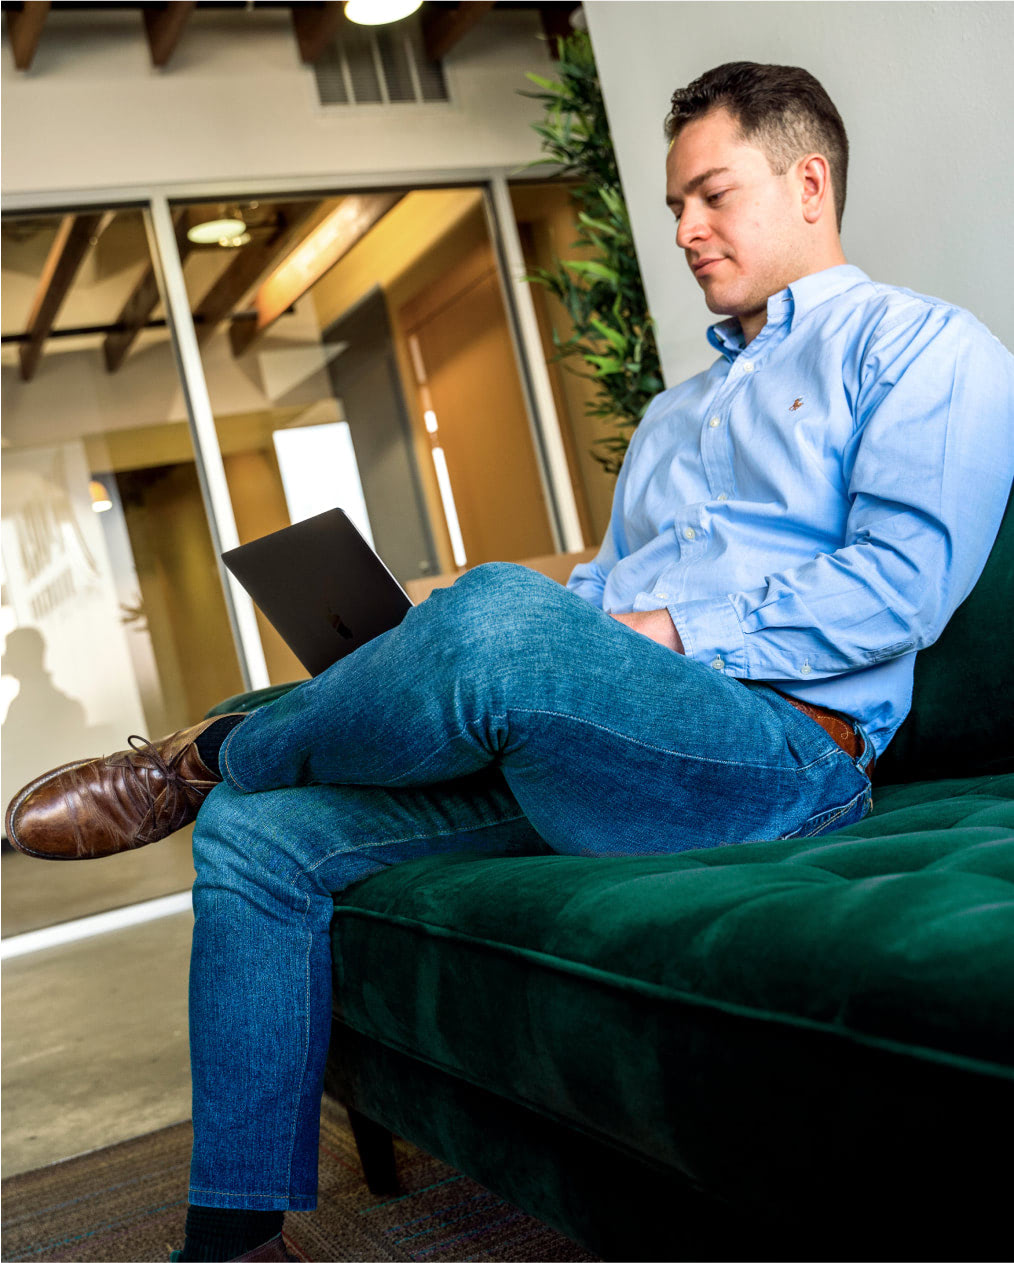 Man in semi-professional clothing sitting on couch working on a laptop